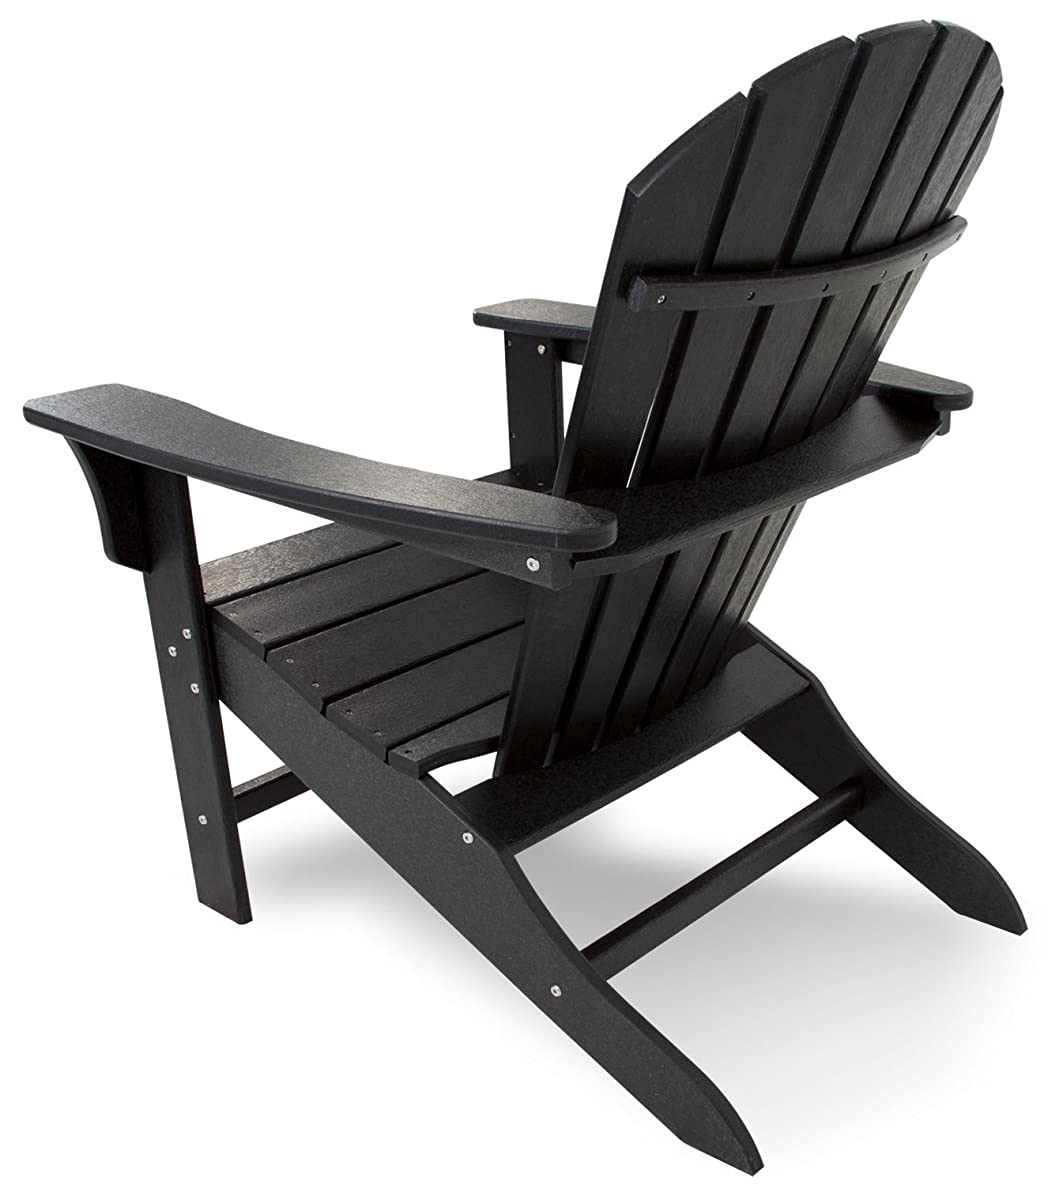 Trex Outdoor Furniture Cape Cod Adirondack Chair, Charcoal Black